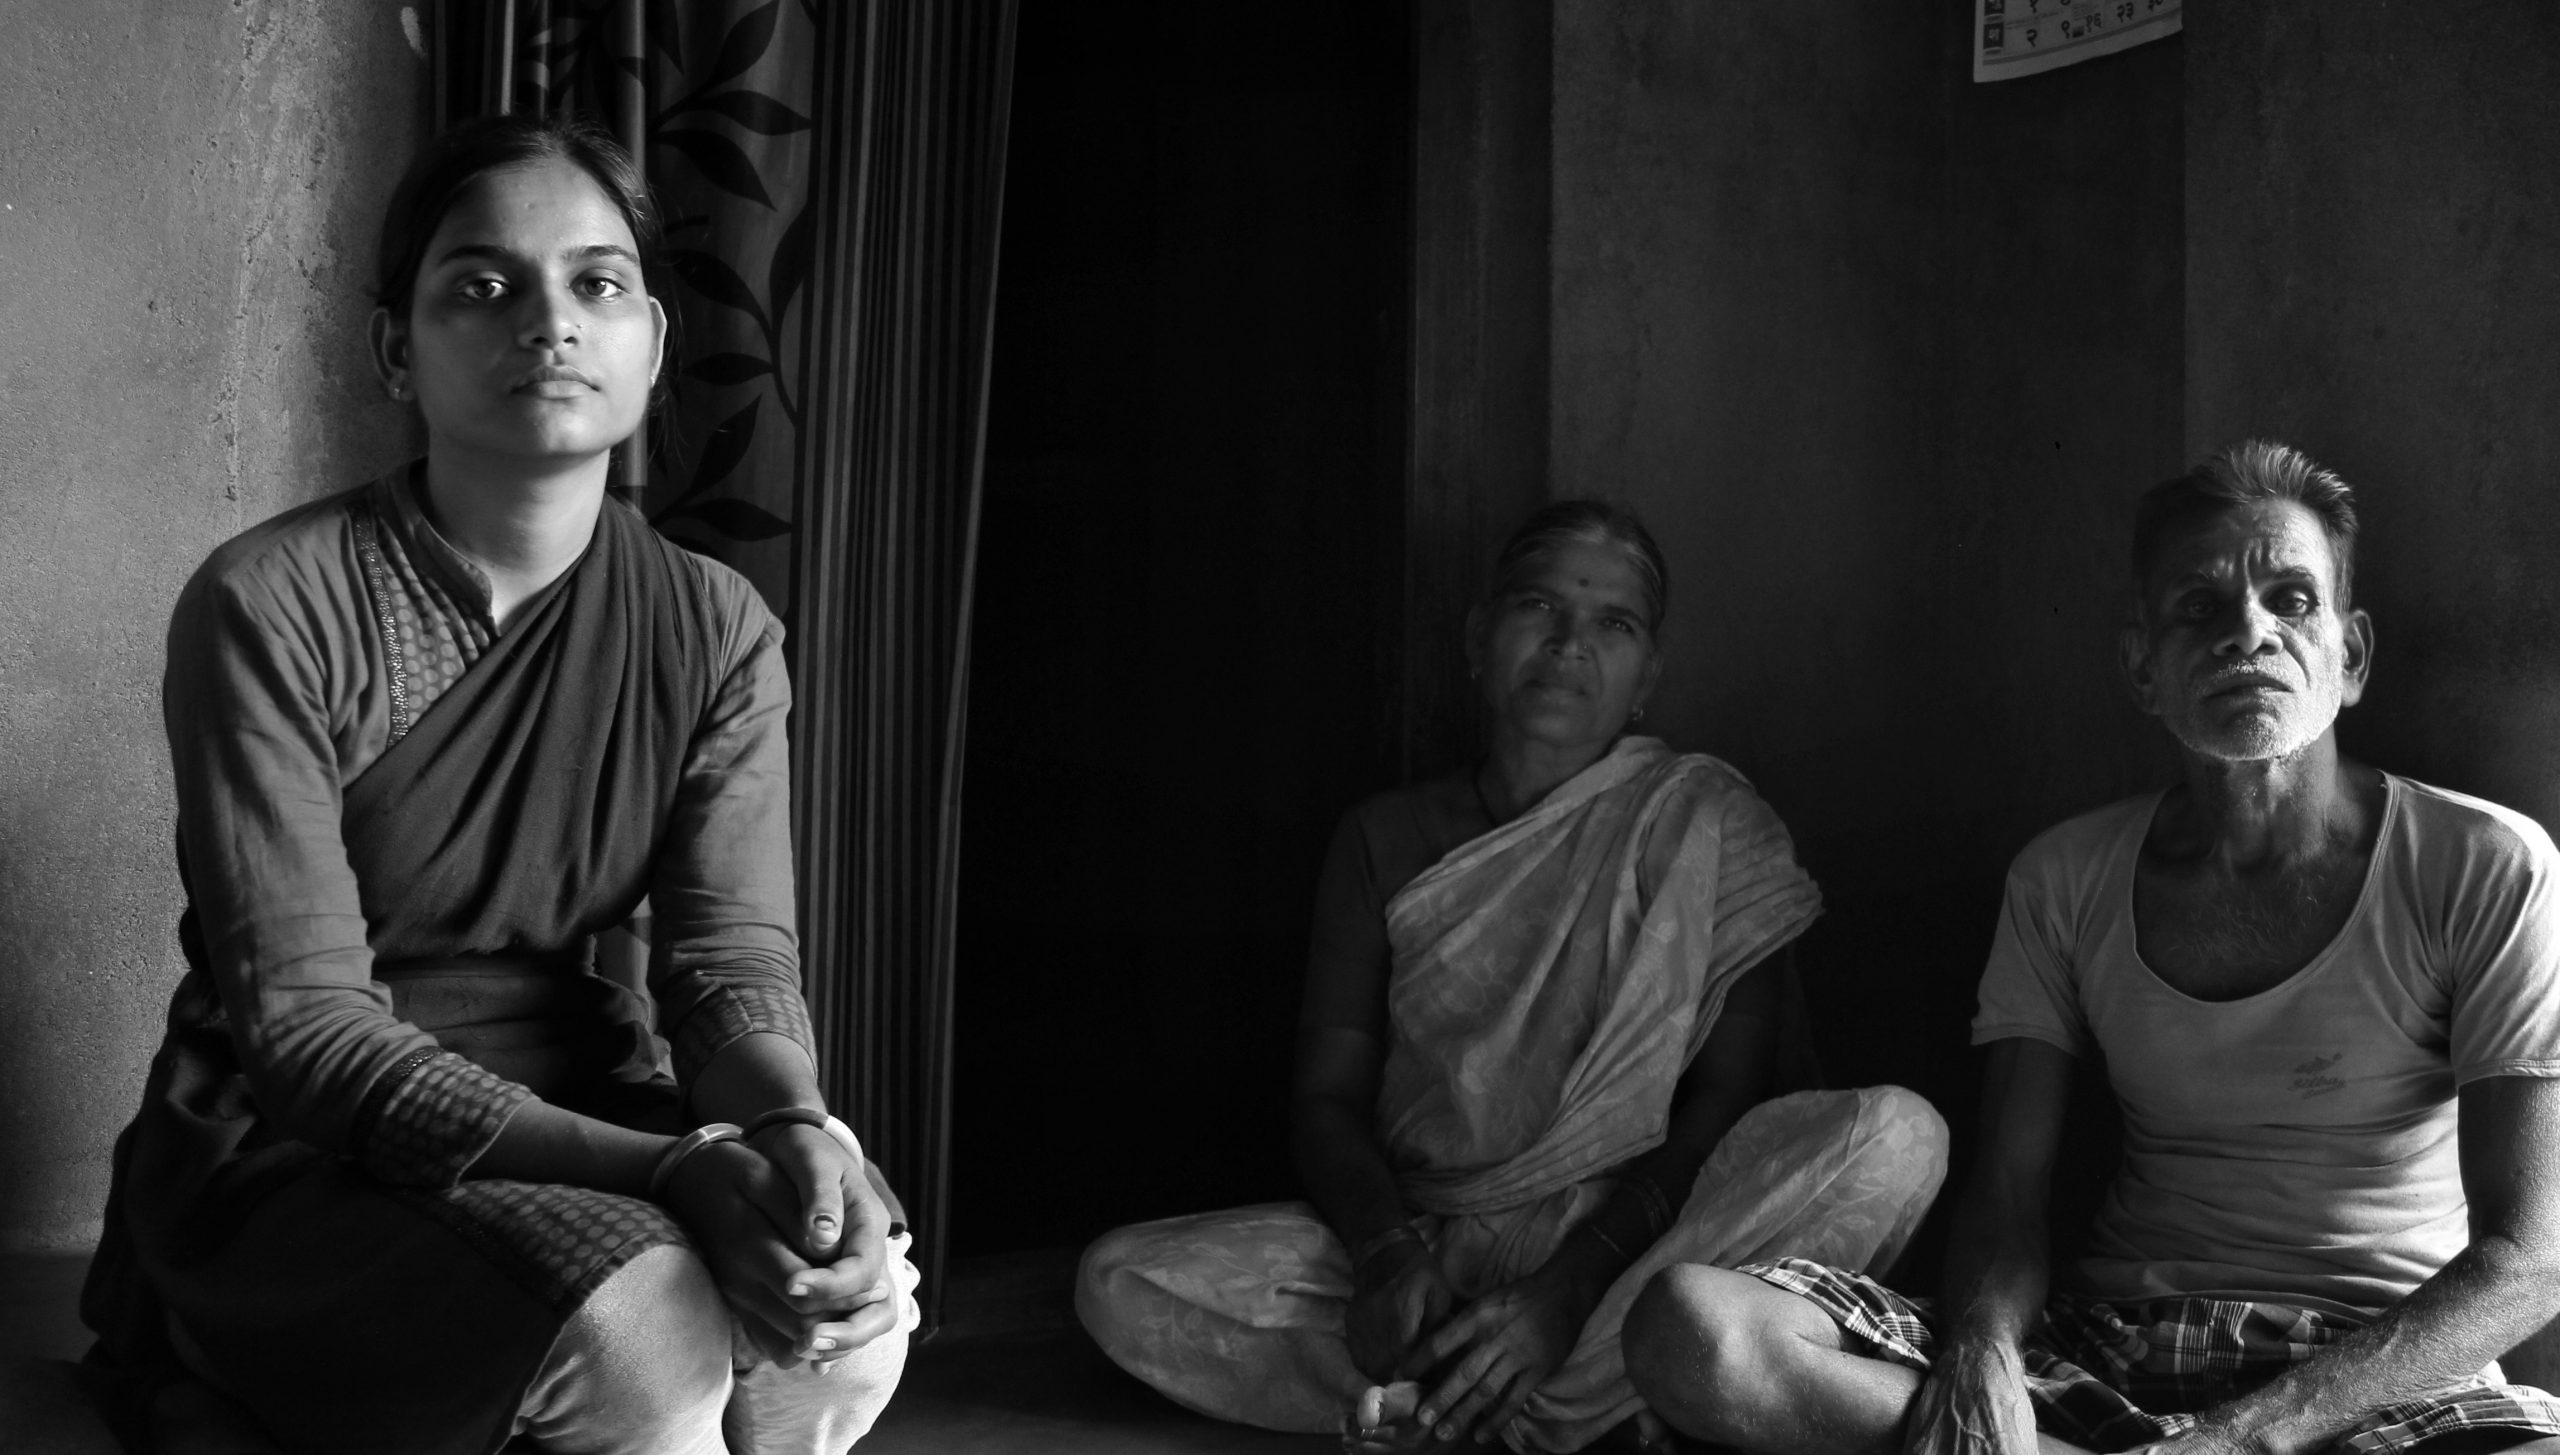 Young Indian girl seated alongside two older Indians-migration